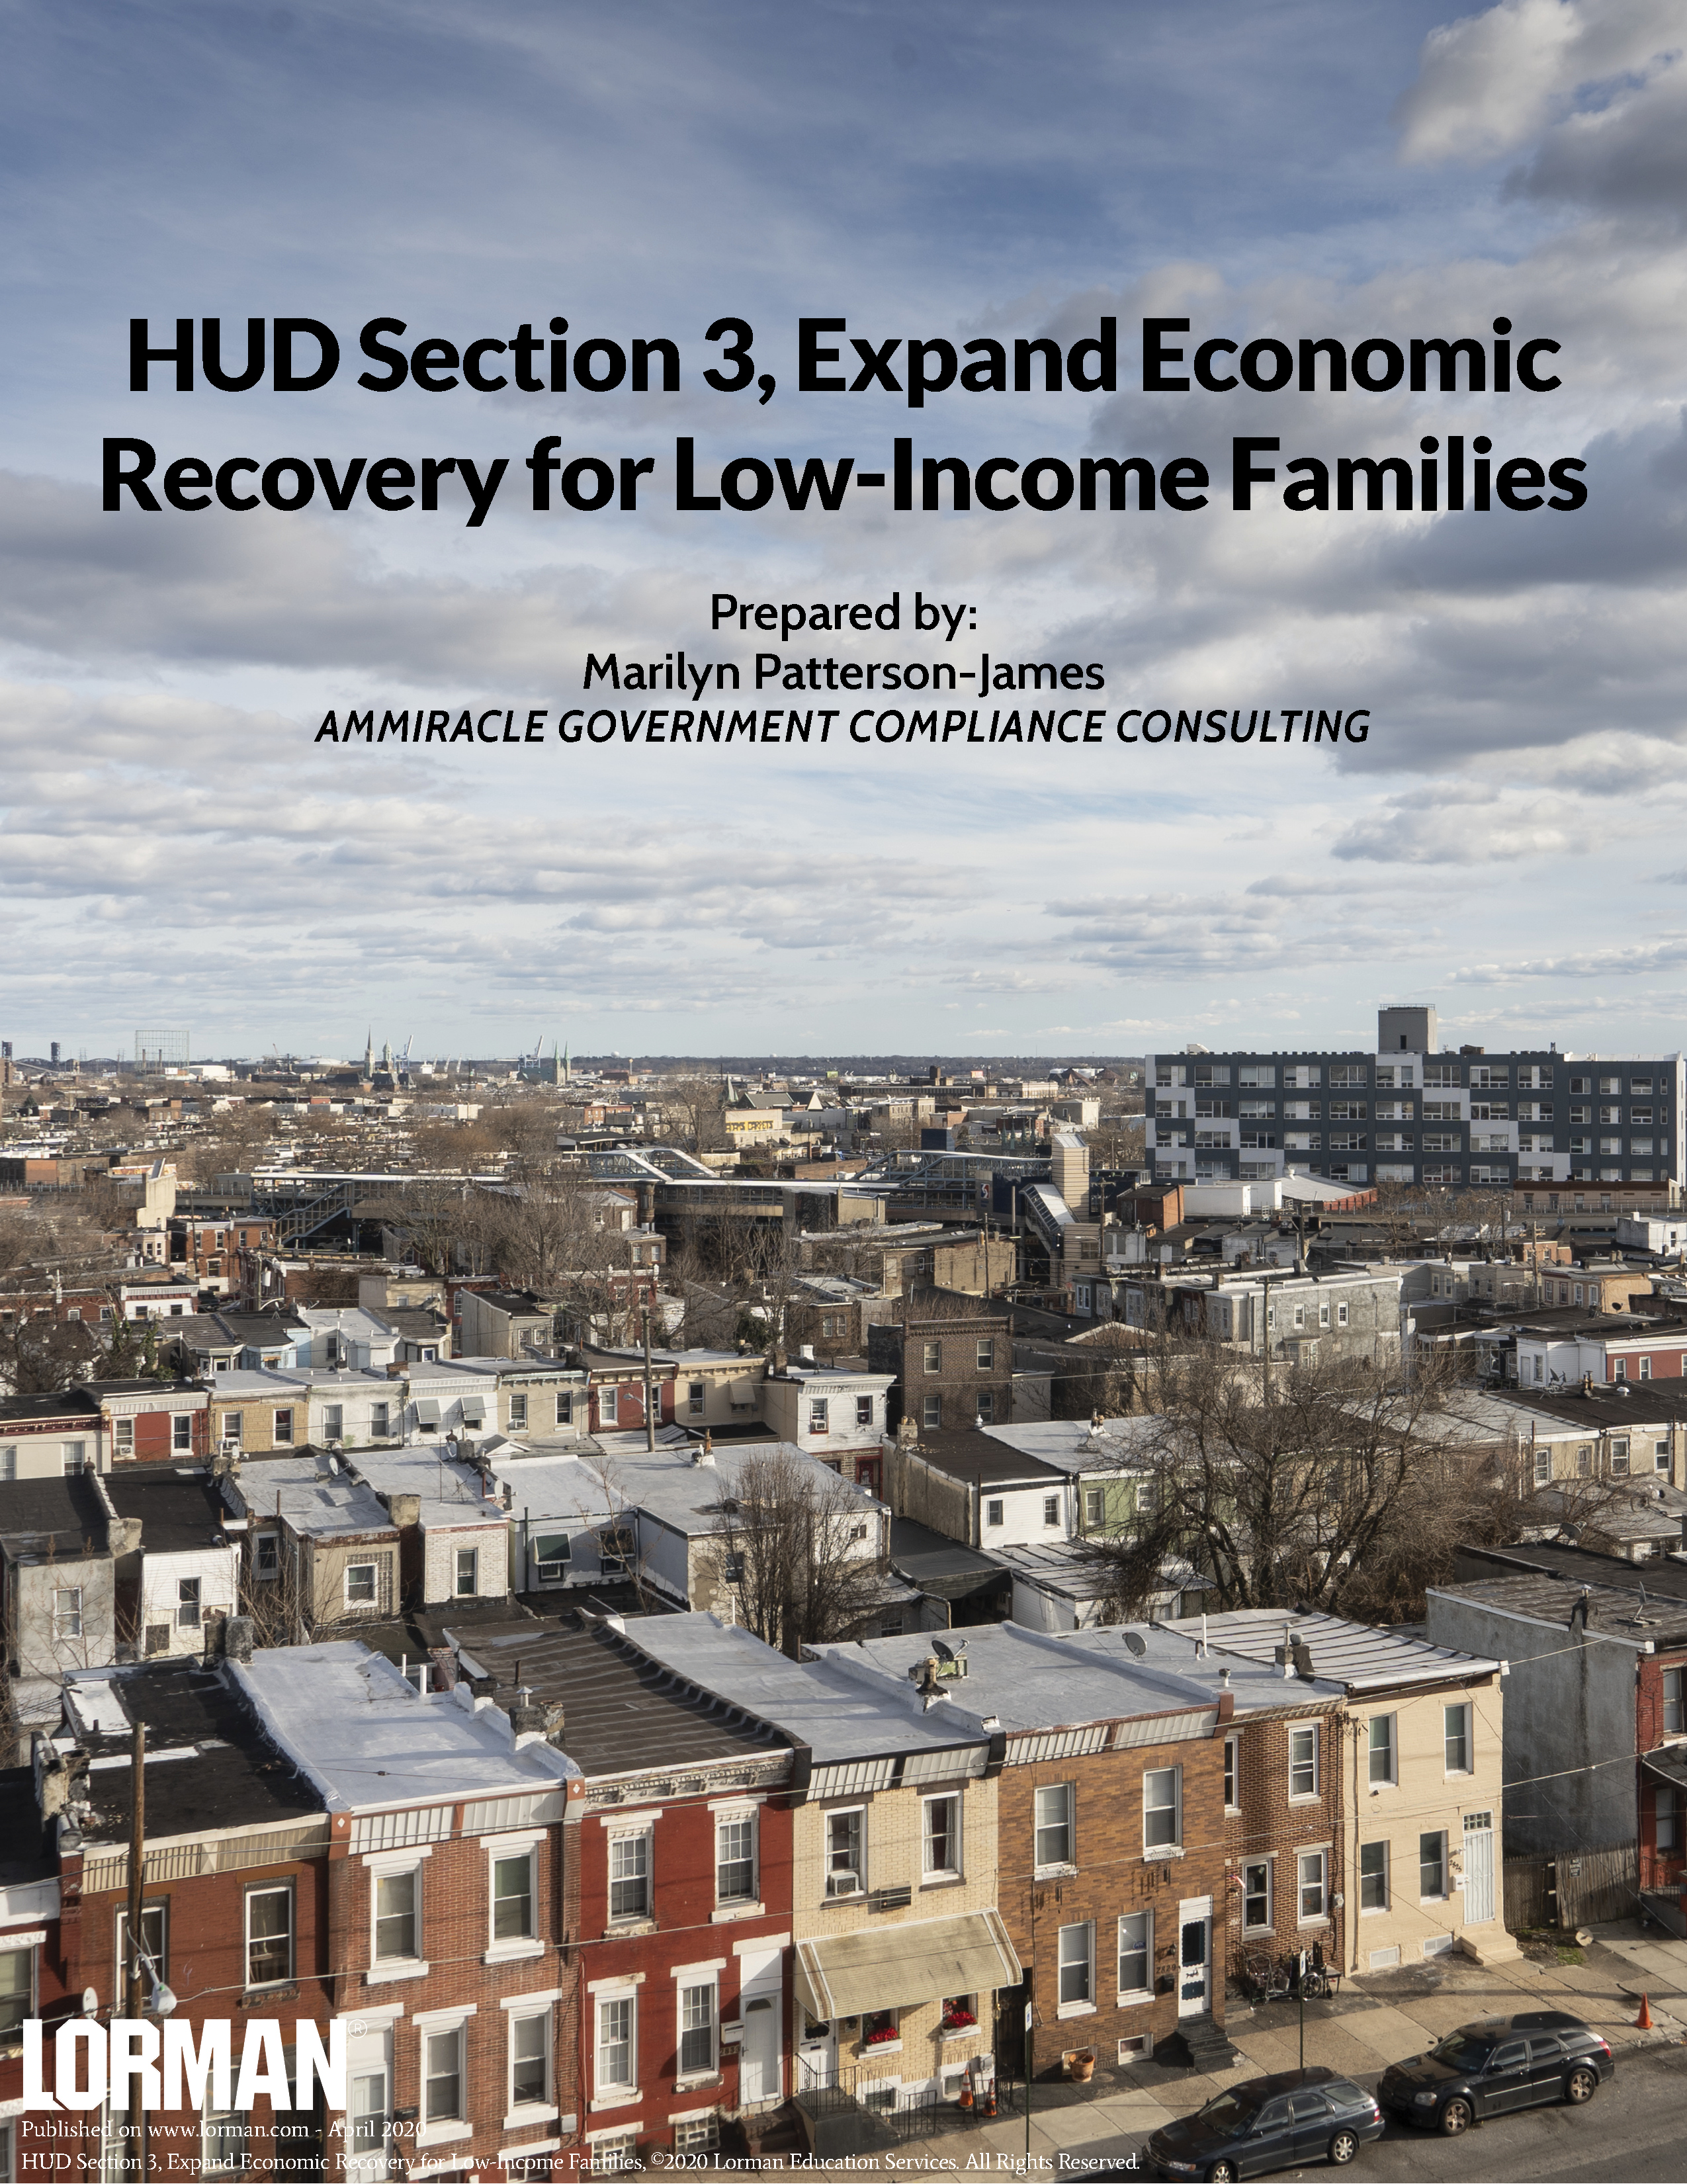 HUD Section 3, Expand Economic Recovery for Low-Income Families